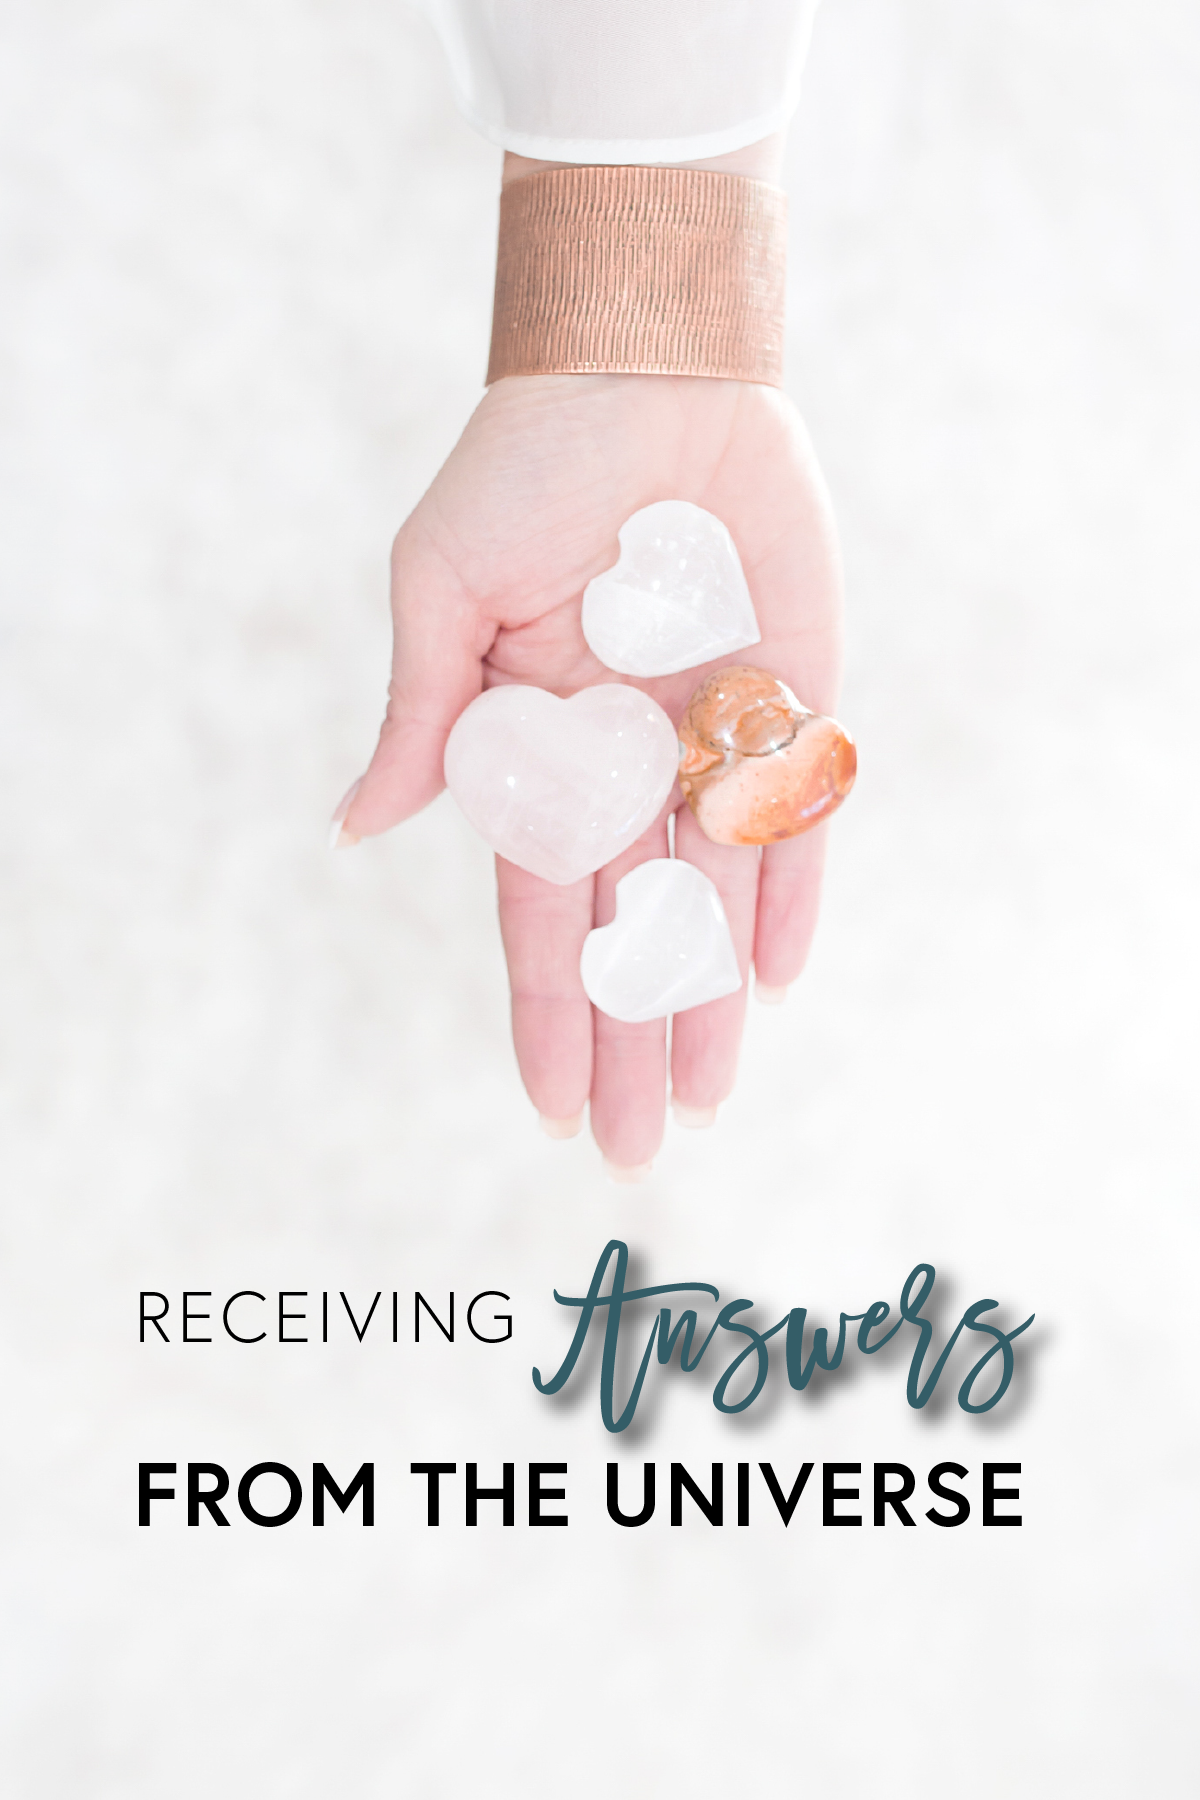 Recognizing signs from the universe